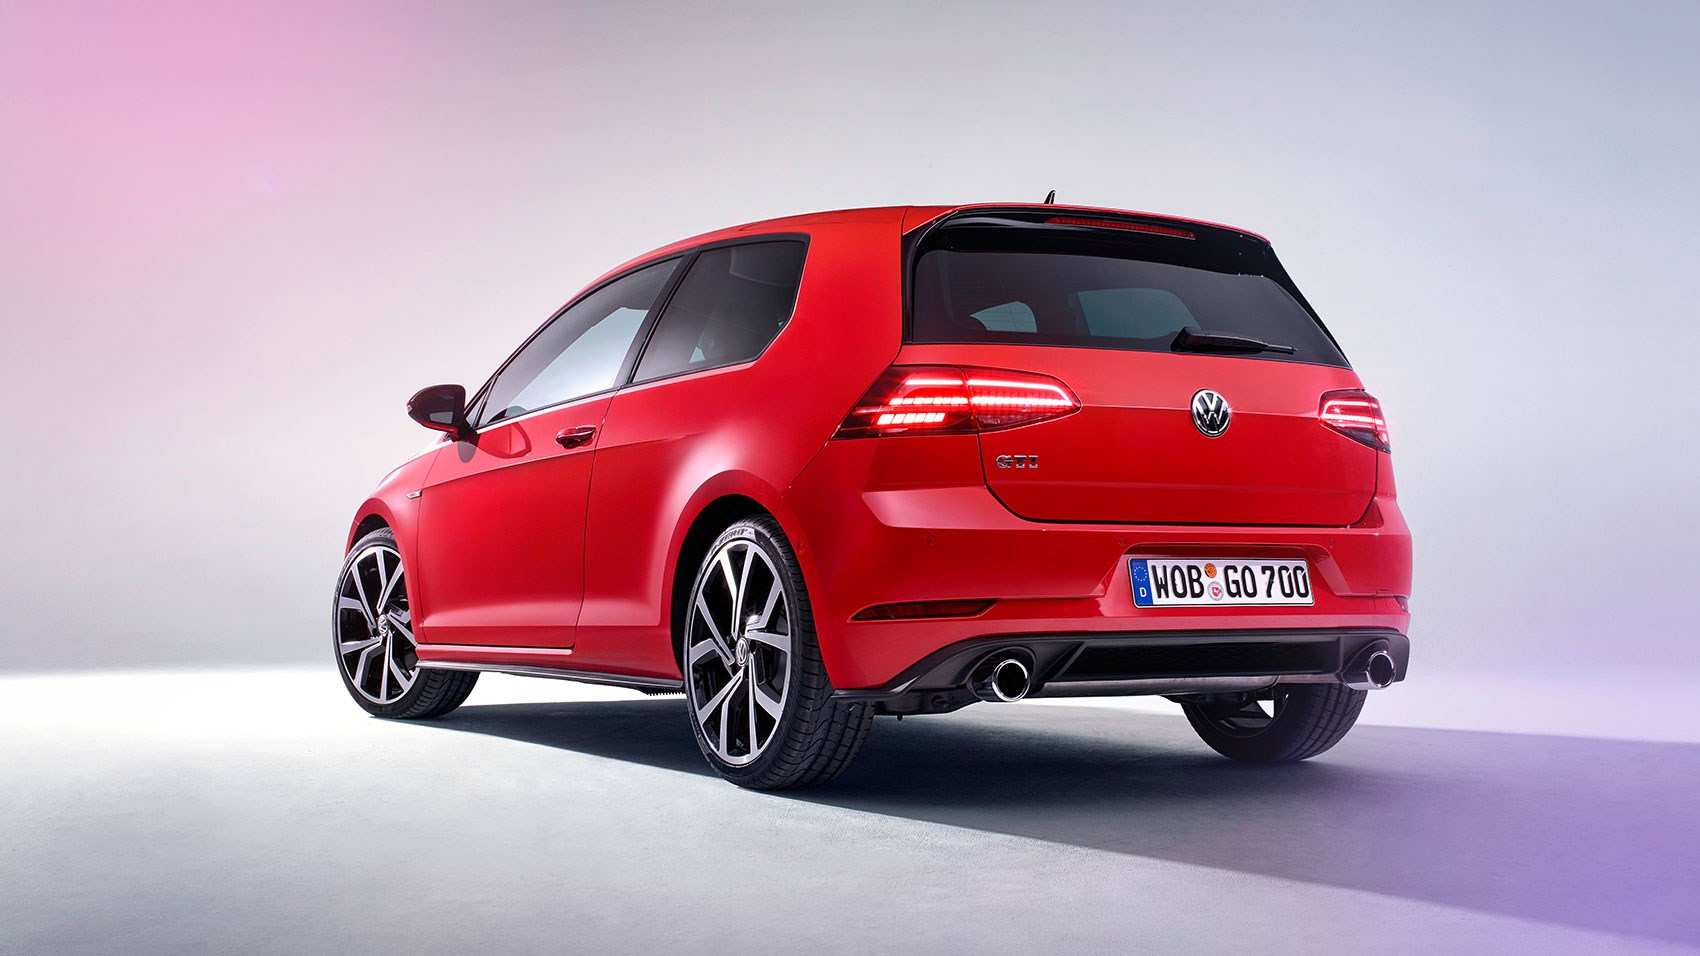 vw golf gti 2017 mk7 facelift review car magazine. Black Bedroom Furniture Sets. Home Design Ideas